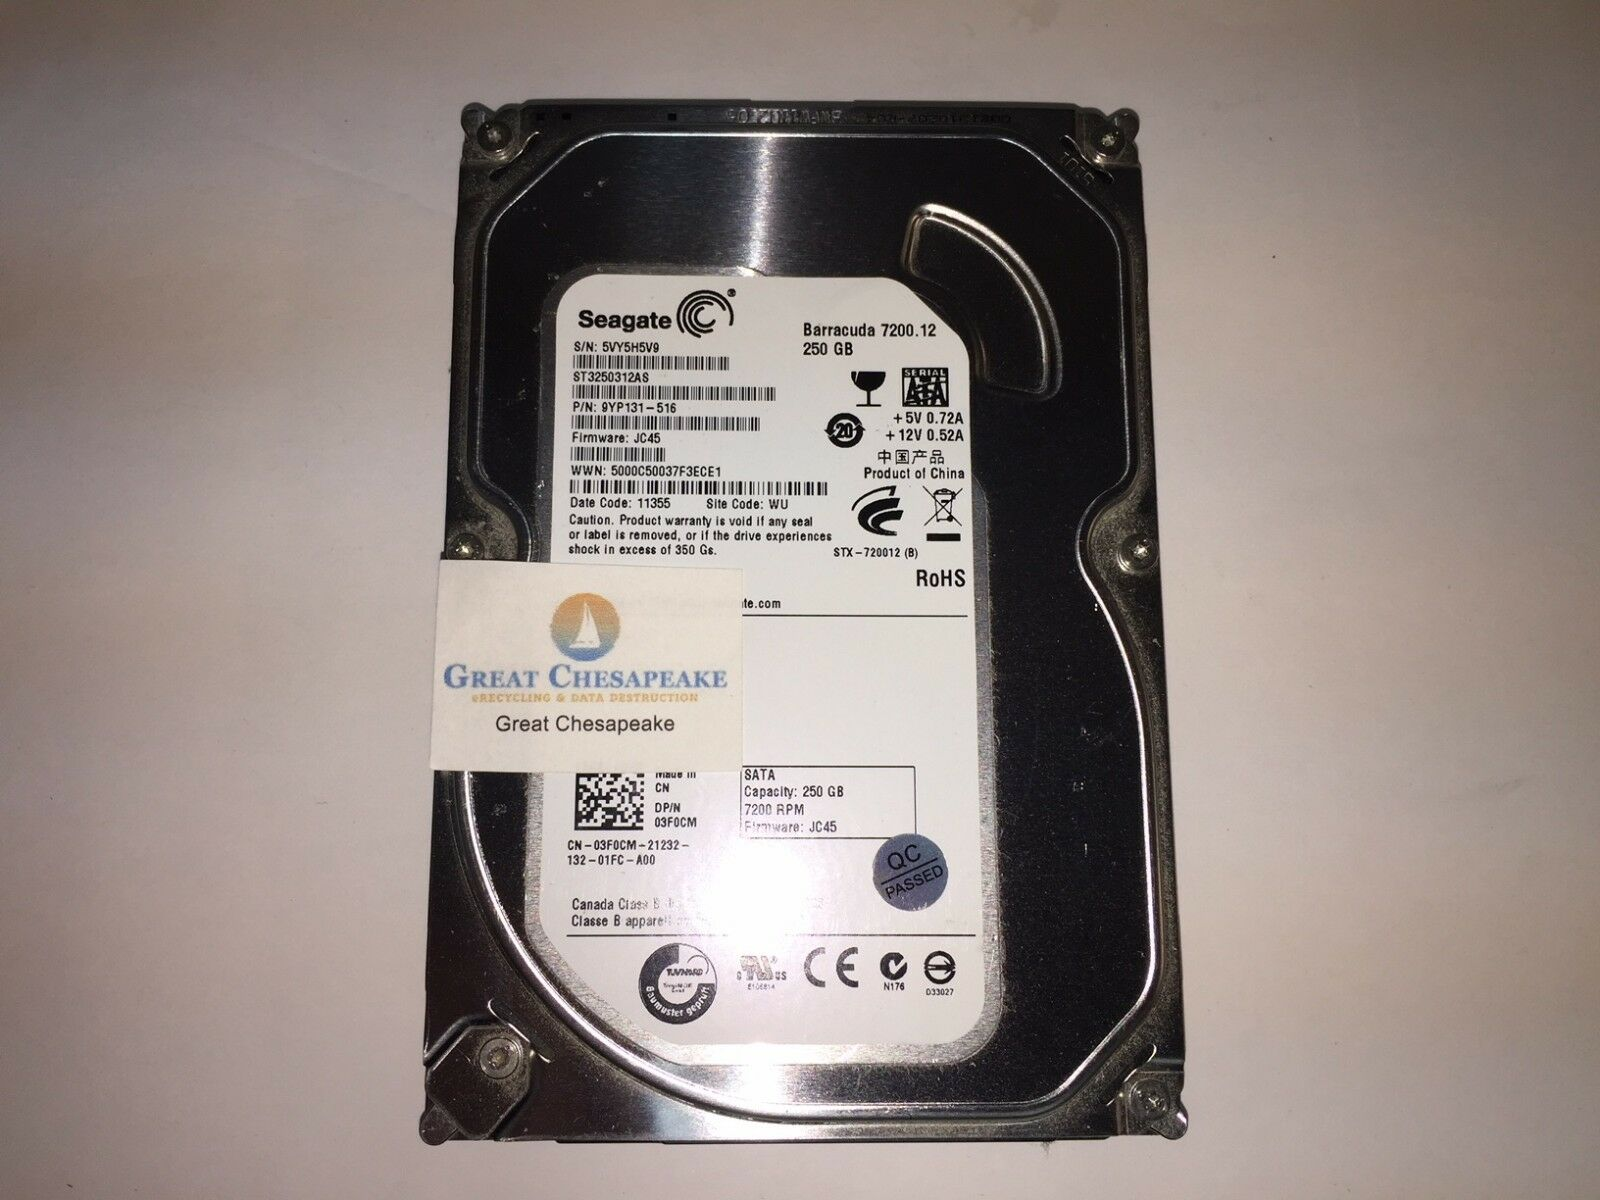 Seagate Barracuda 720012 250gbinternal7200rpm35 St3250312as Firecuda 35 Inch 2tb Sshd 5 Years Warranty Hddssd For Pc Gaming Hdd Ebay